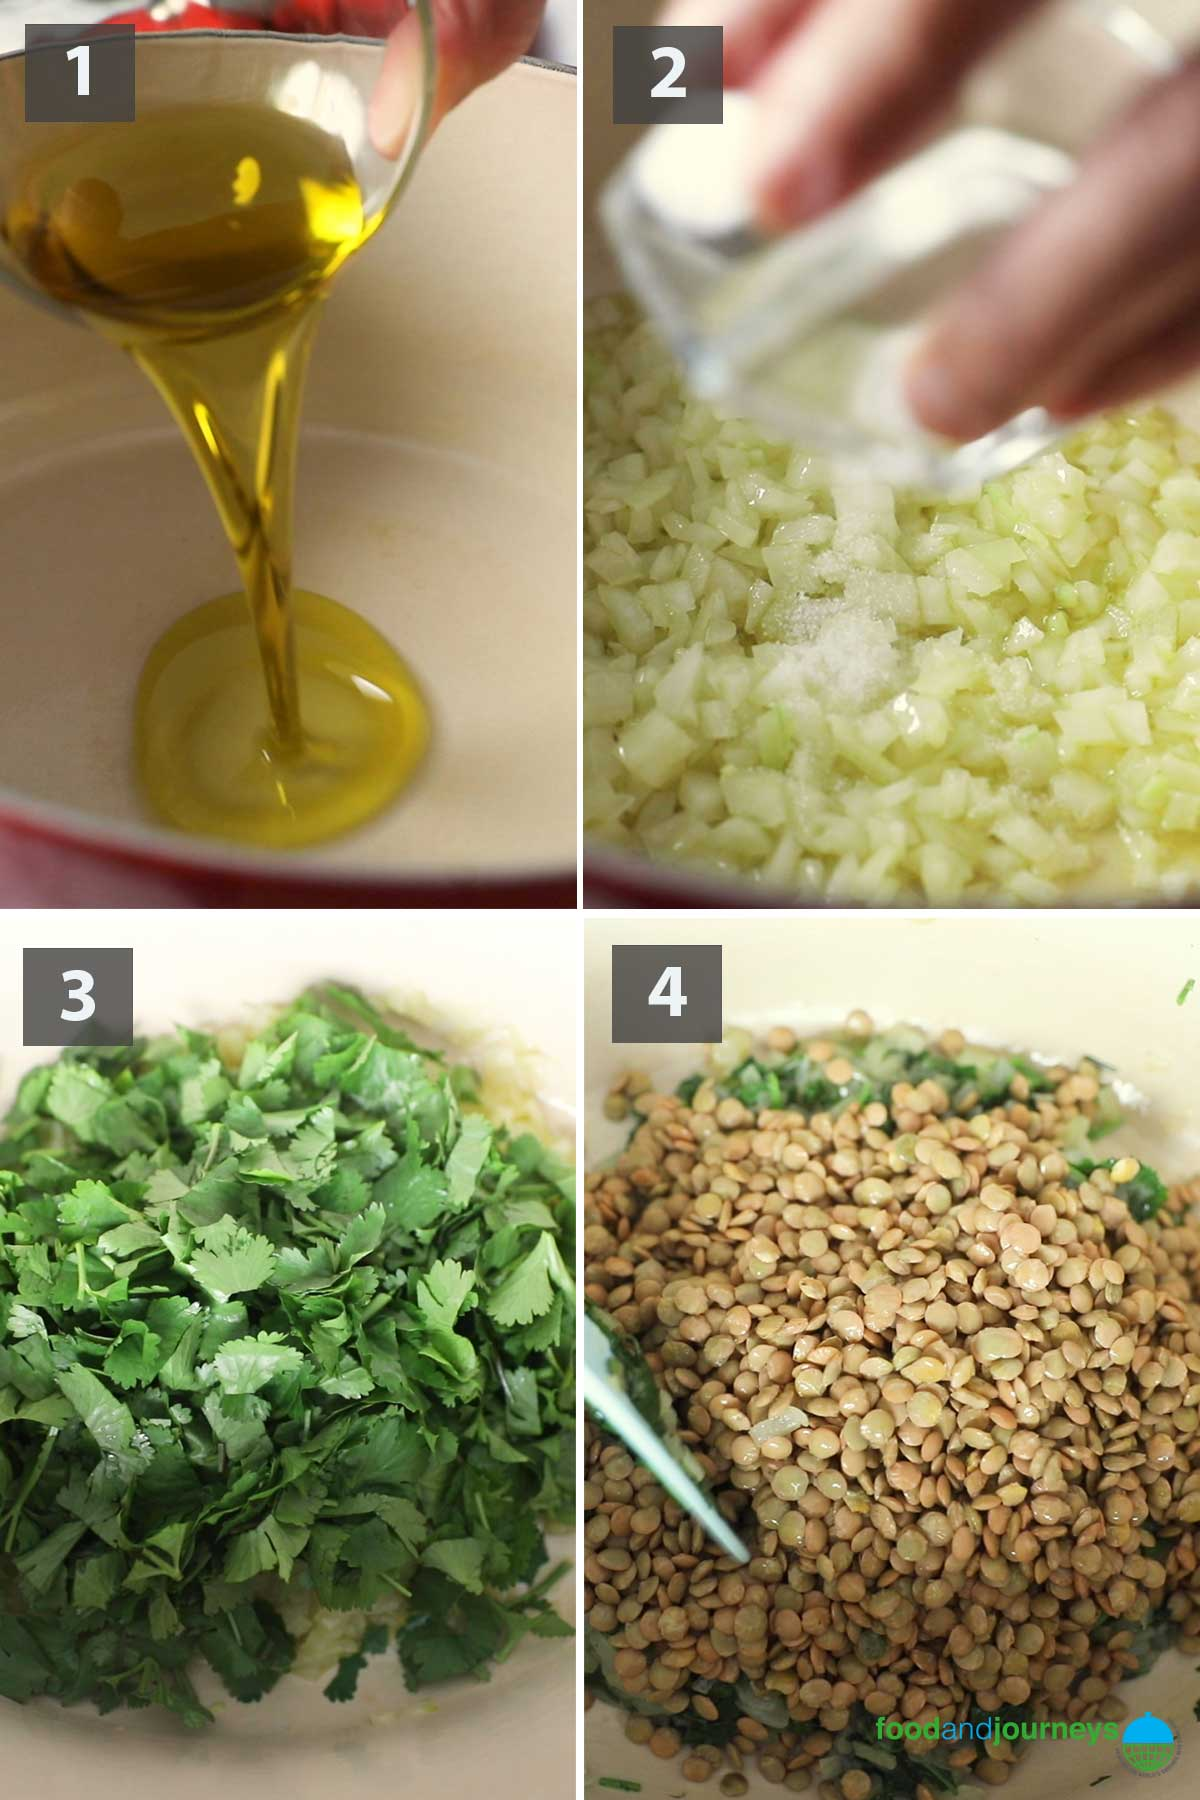 First part of a collage of images showing the step by step process on how to make Sour Lentil Soup at home.